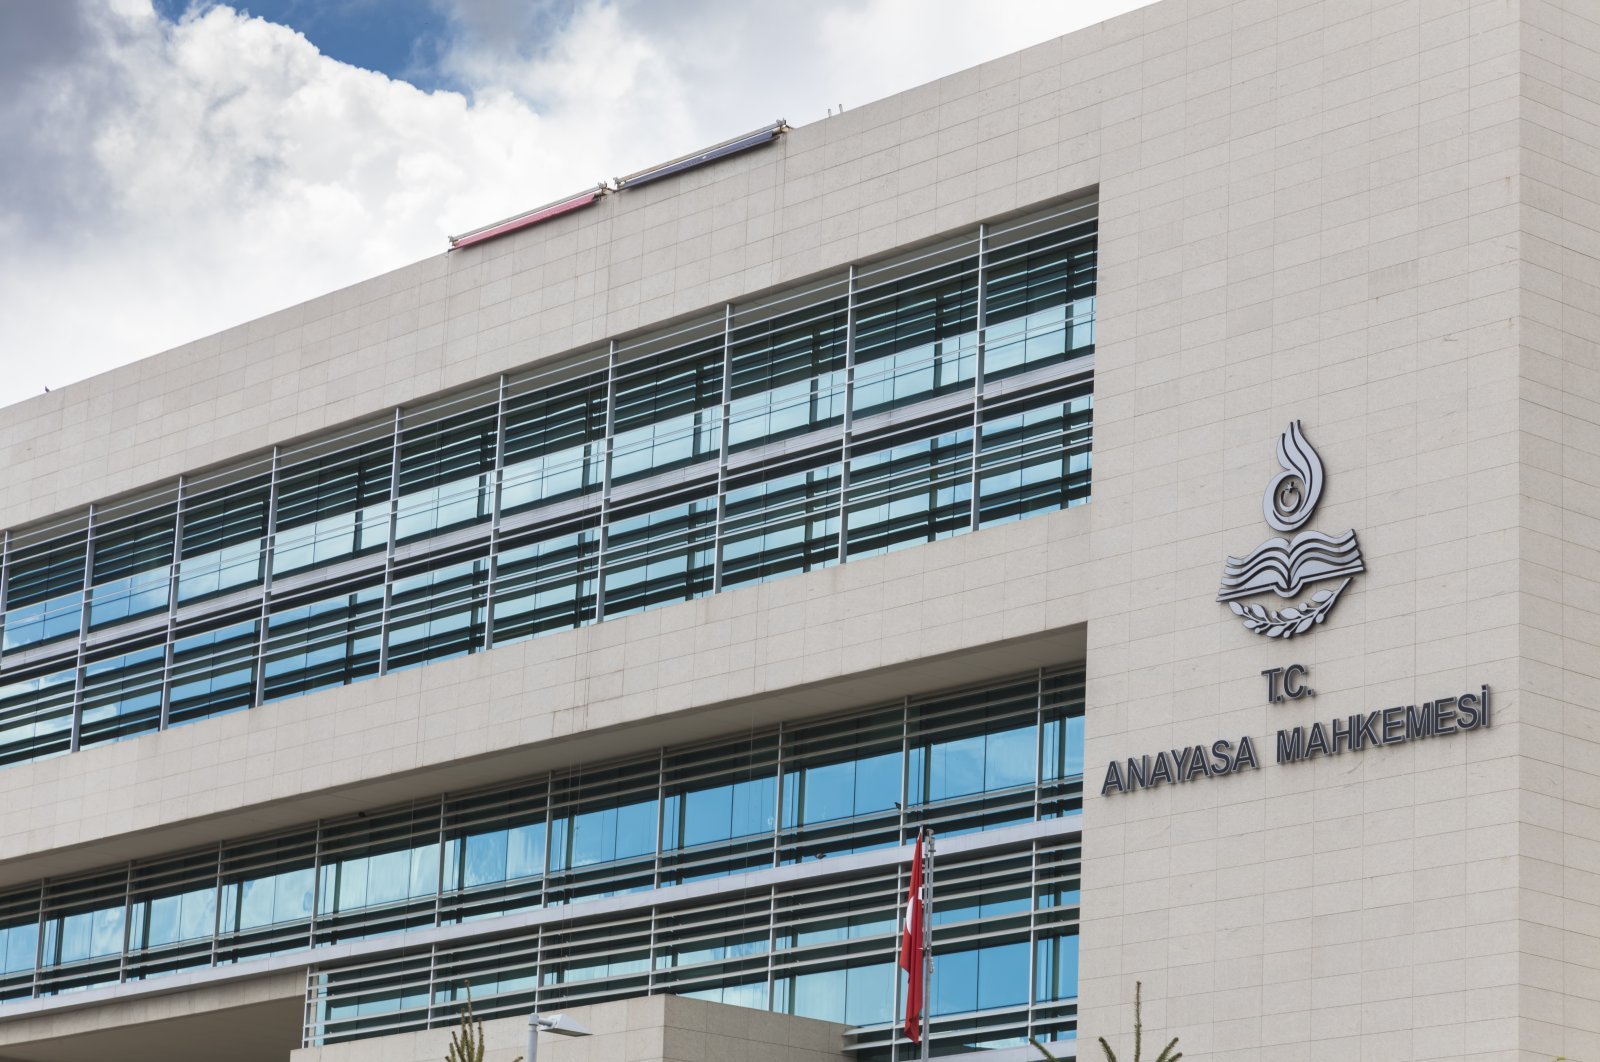 The Constitutional Court of Turkey, the highest legal body for constitutional review in Turkey, in Ankara. (Shutterstock File Photo)